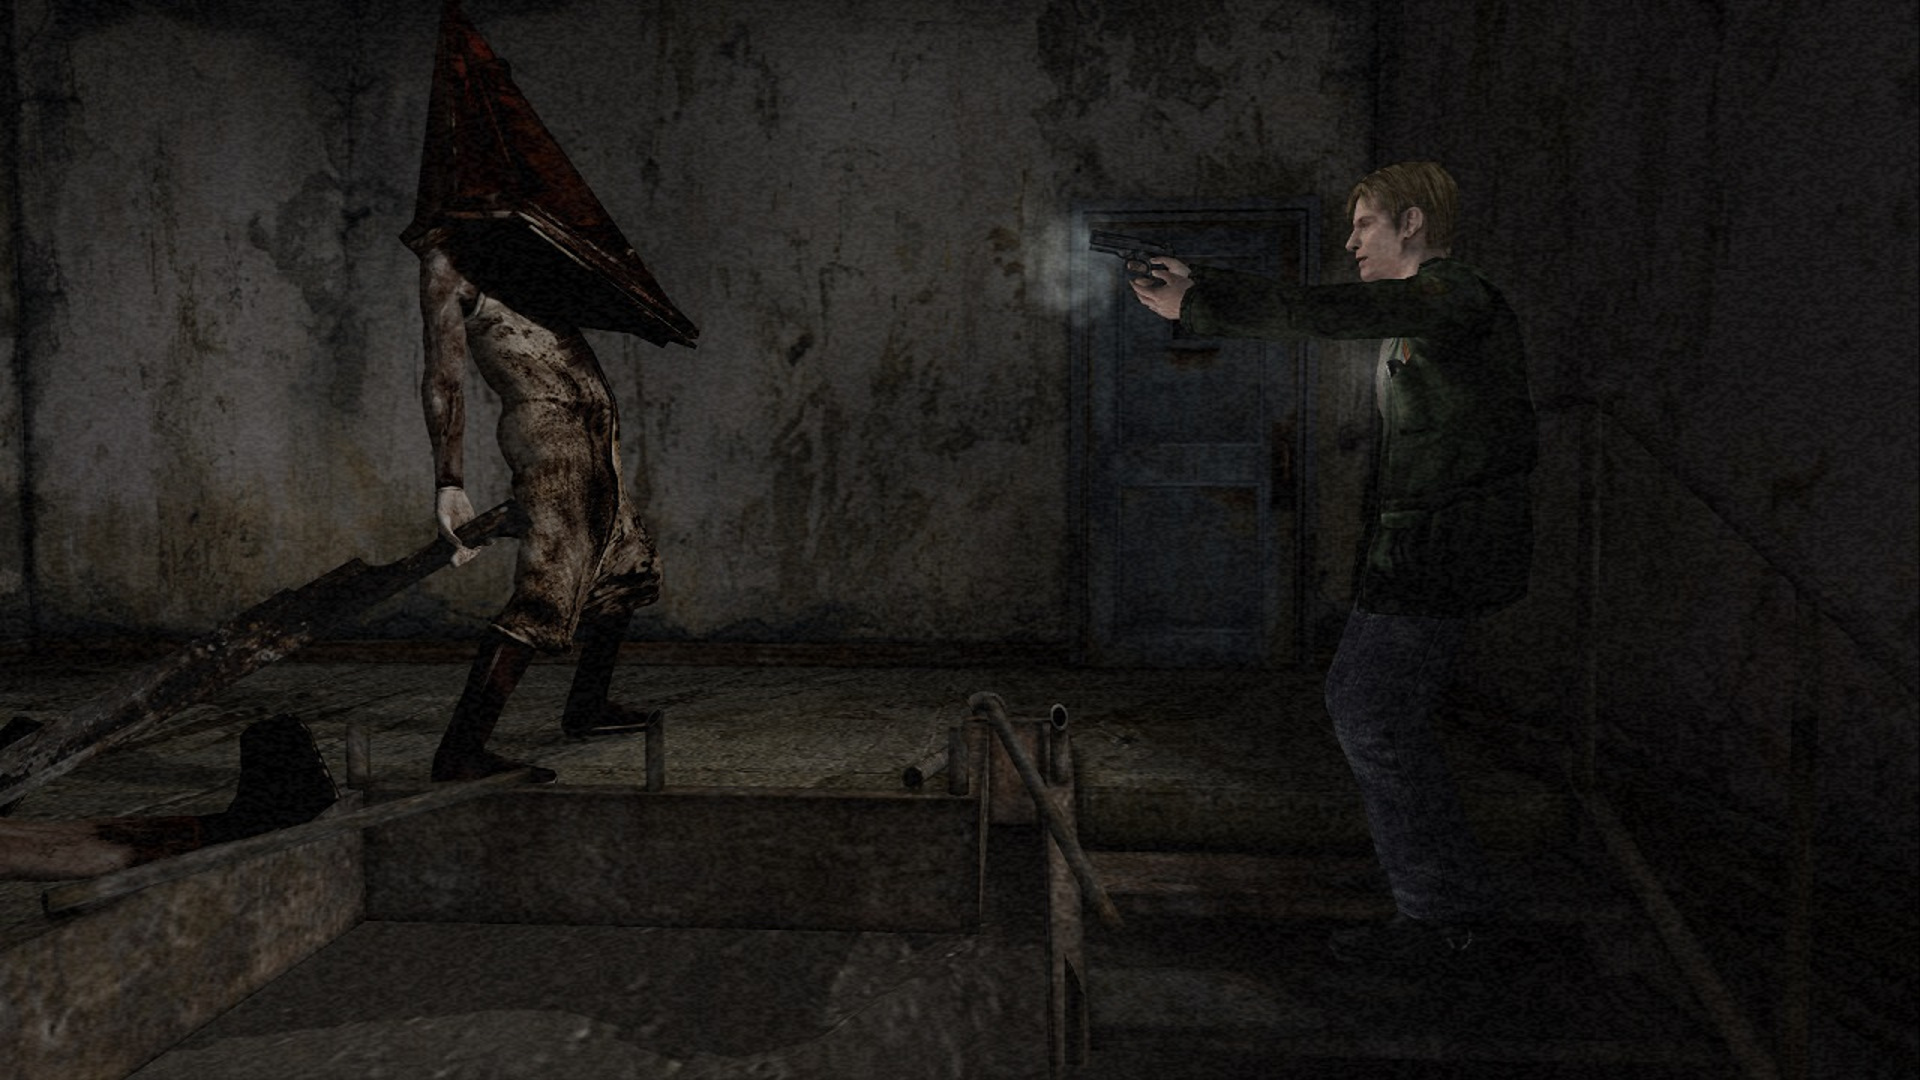 Actually, Silent Hill 2 takes place in the late '70s or early '80s